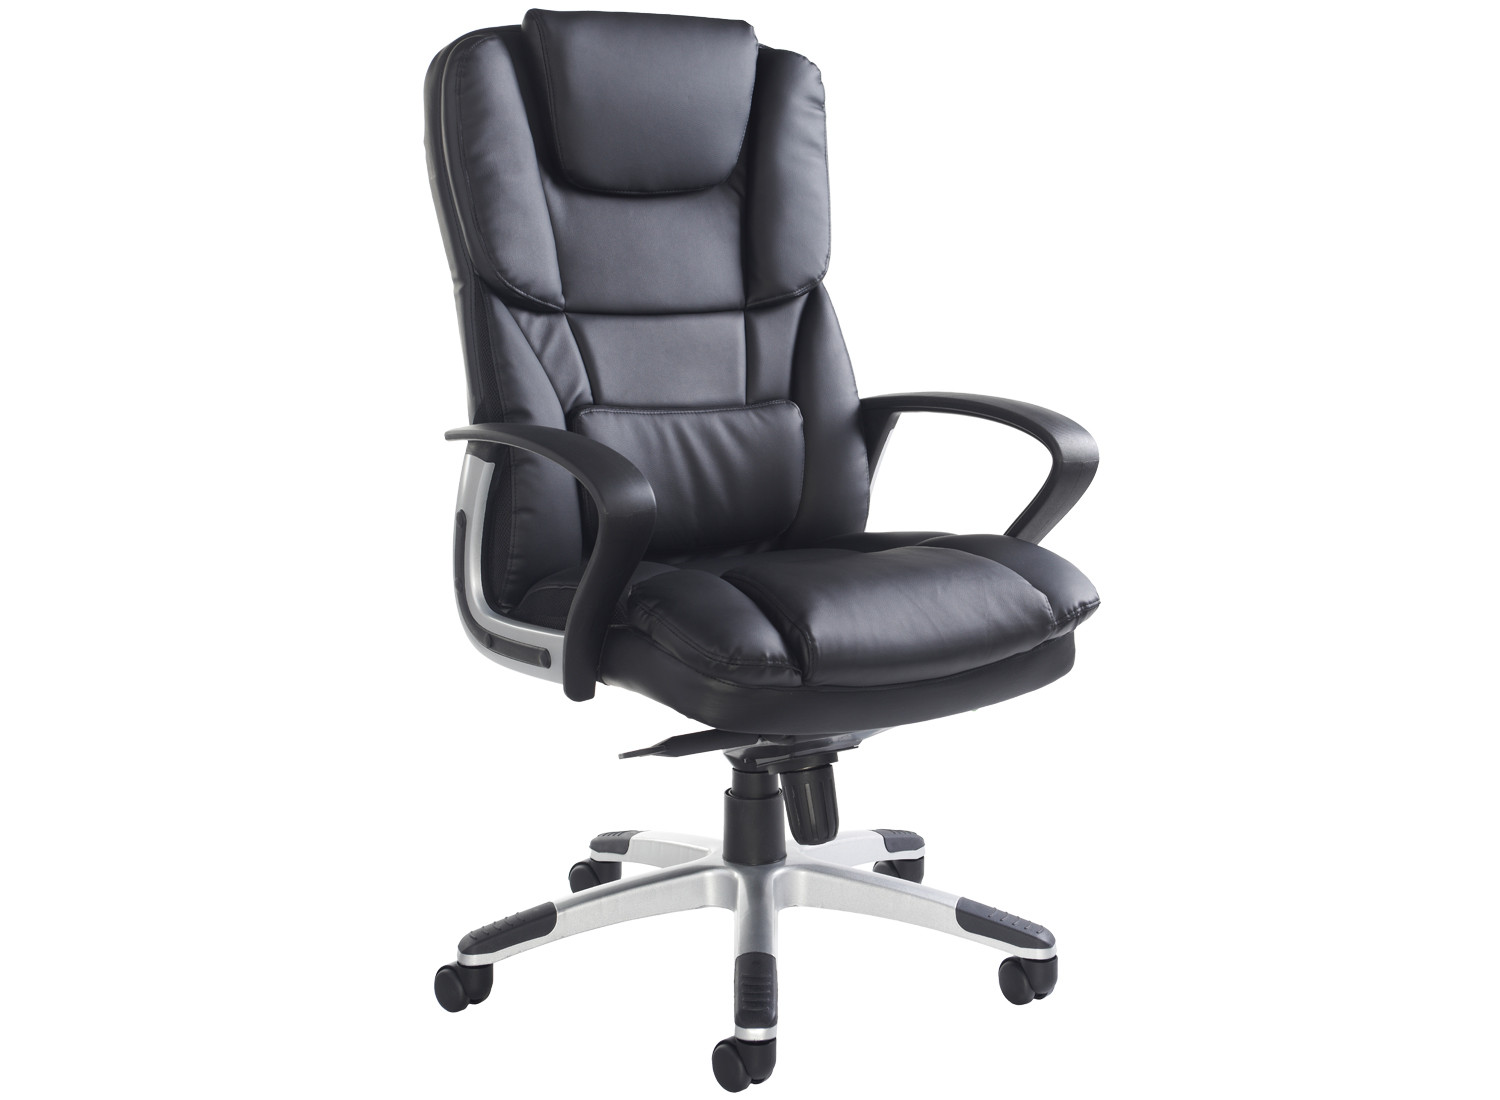 Grenero high back leather faced executive chair